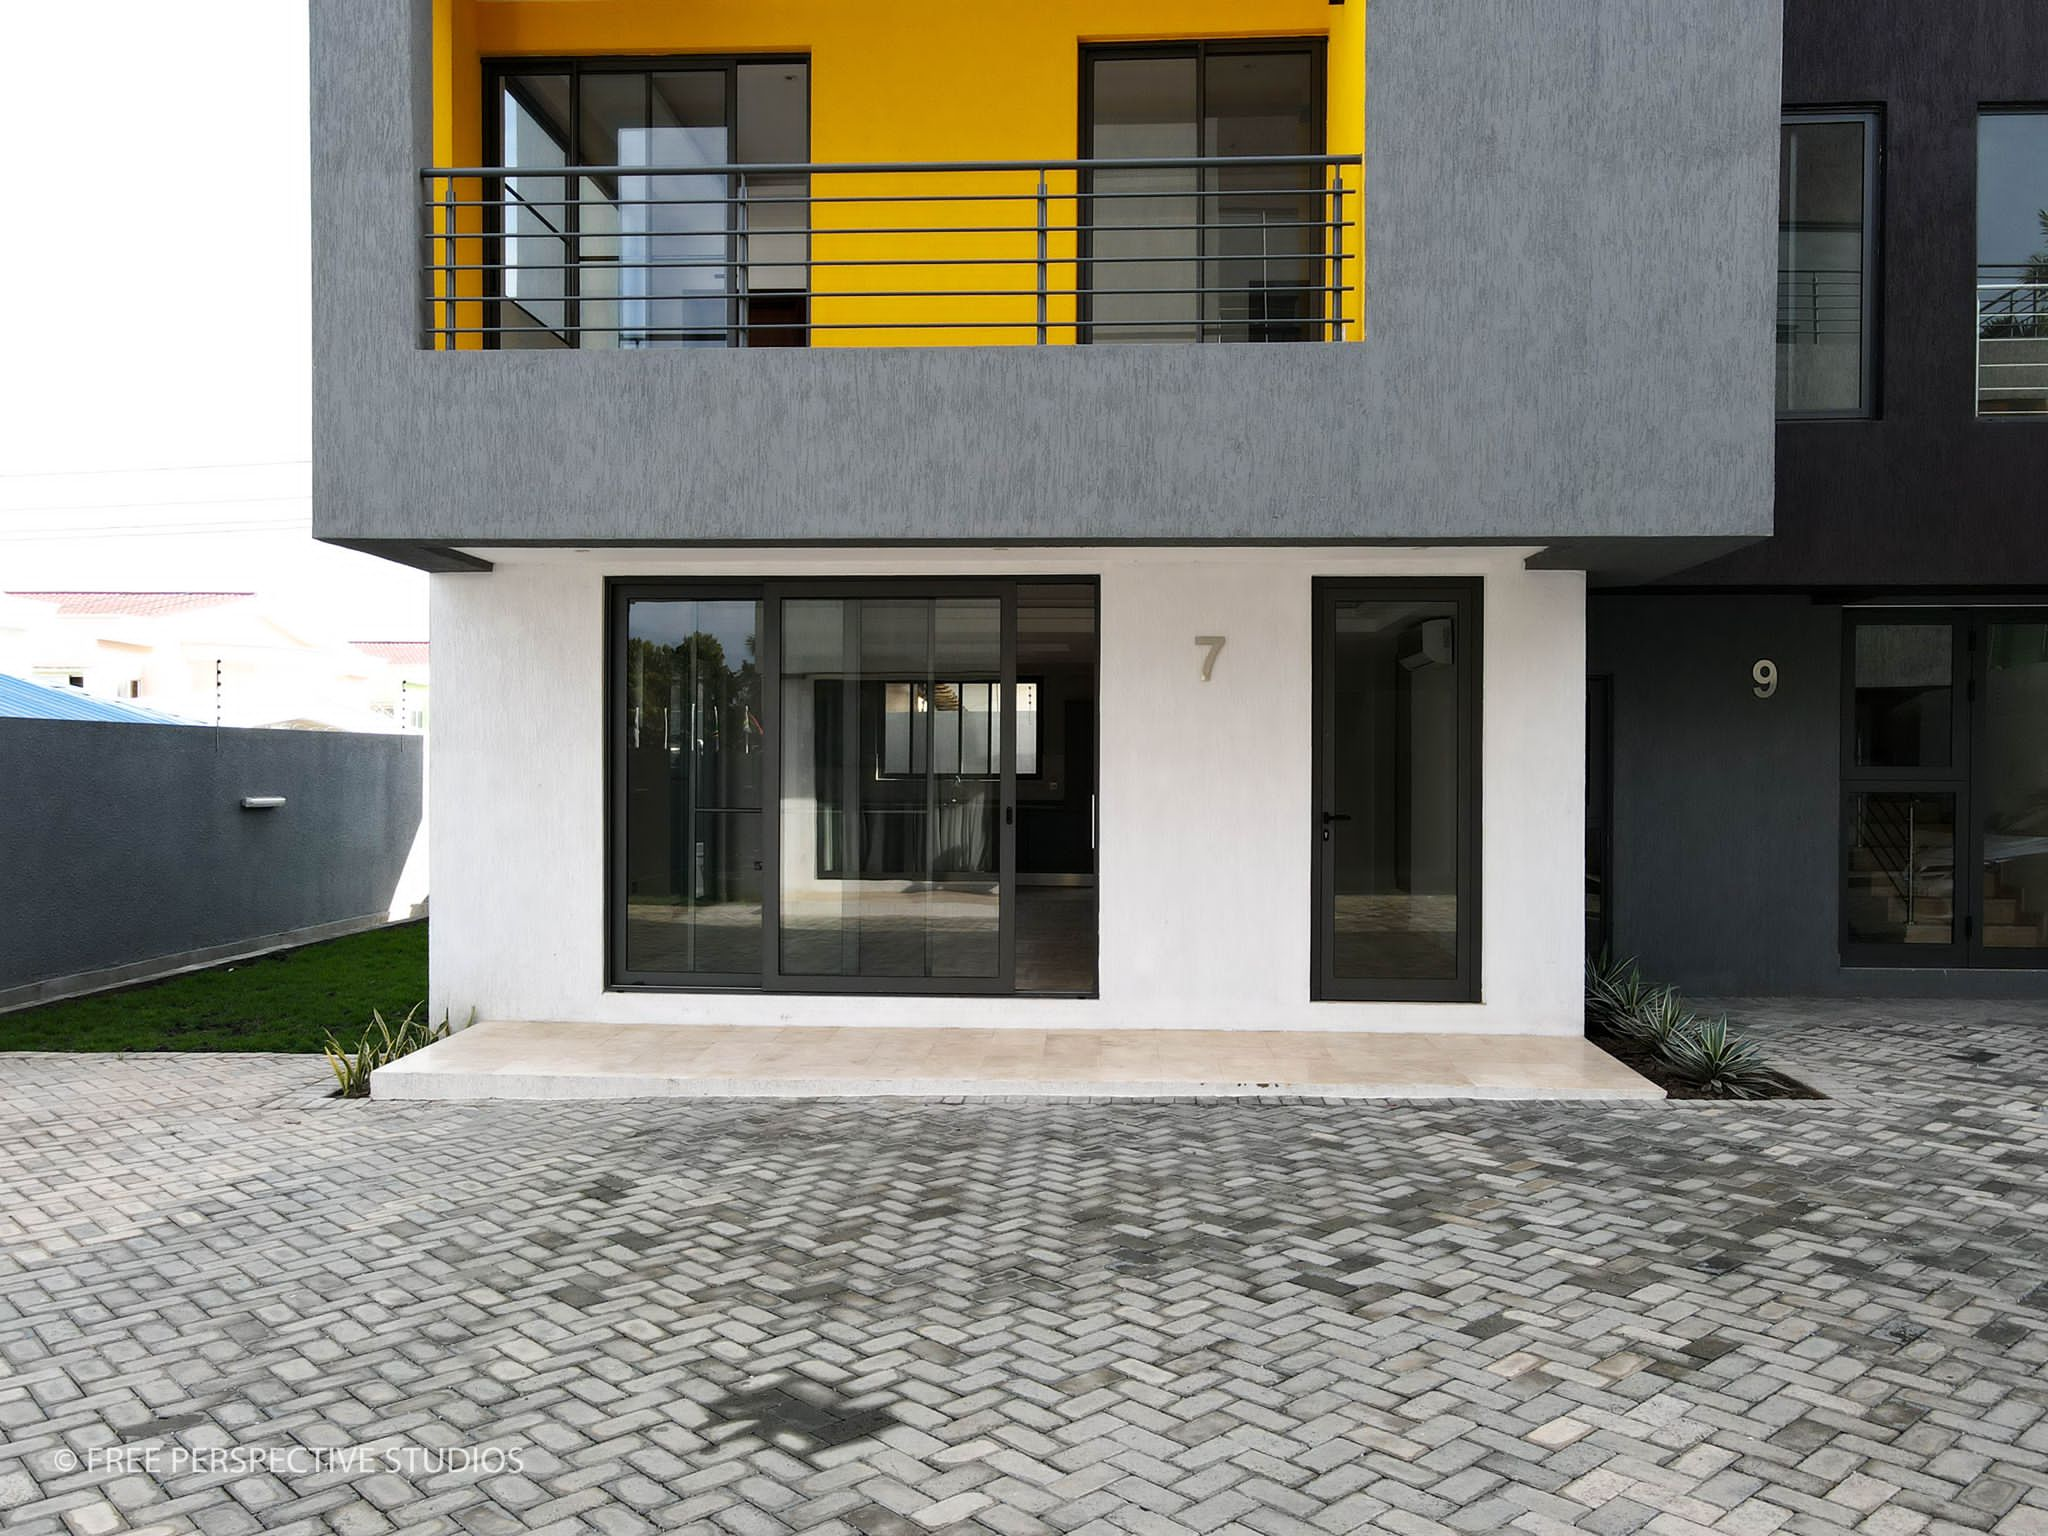 3 BEDROOM APARTMENT DUPLEX FOR SALE AT AIRPORT RESIDENTIAL AREA